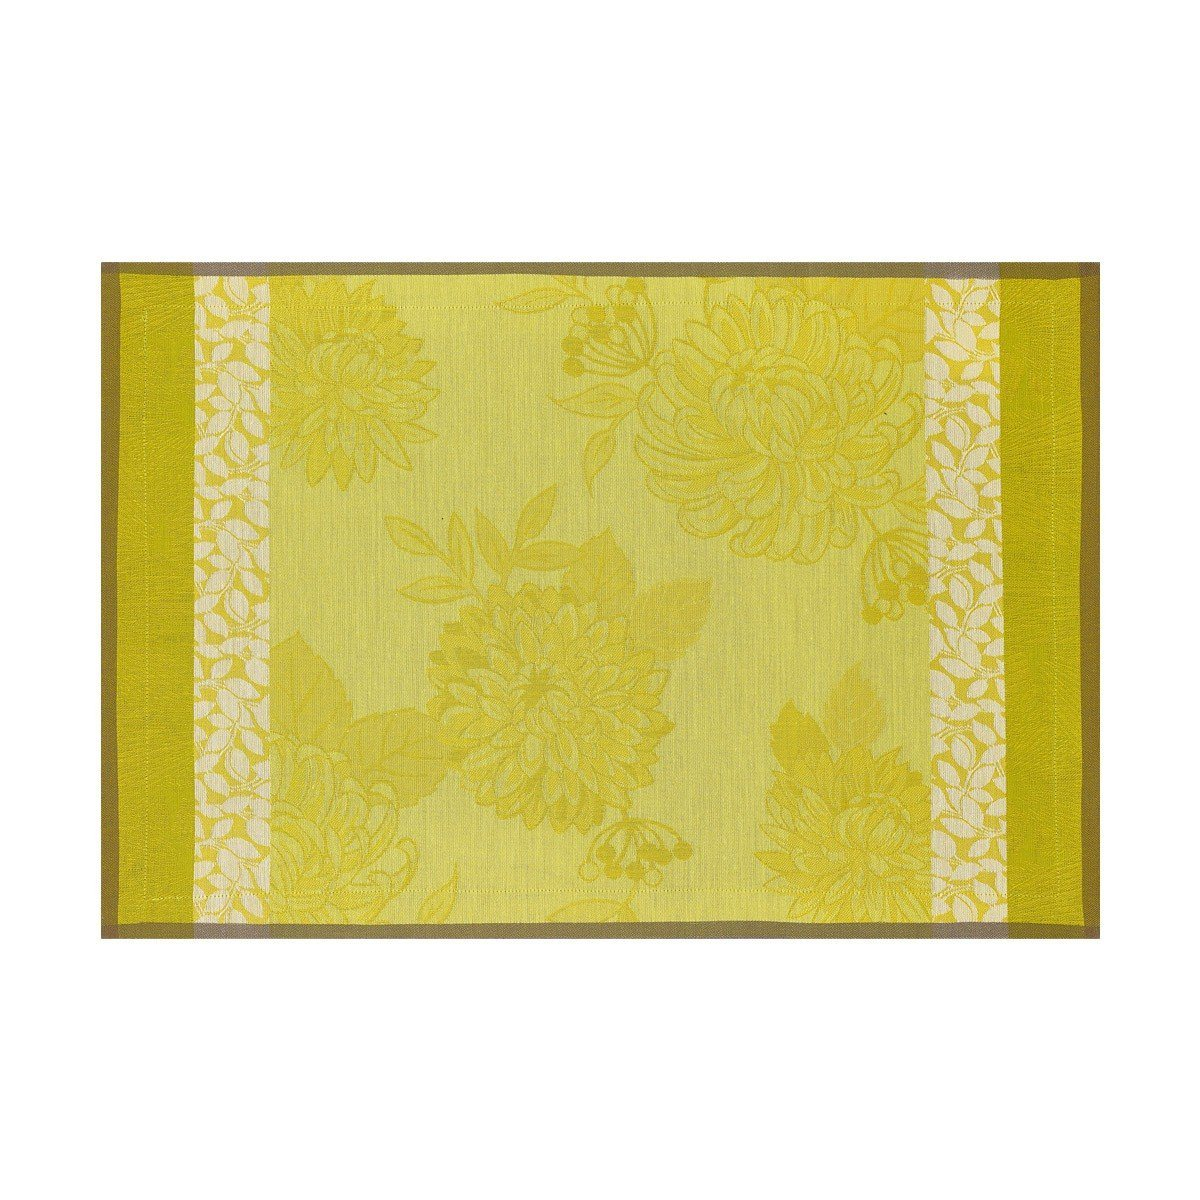 Le Jacquard Français Table Linen Parfums De Bagatelle Fig Linens Freesia Green Yellow Placemat